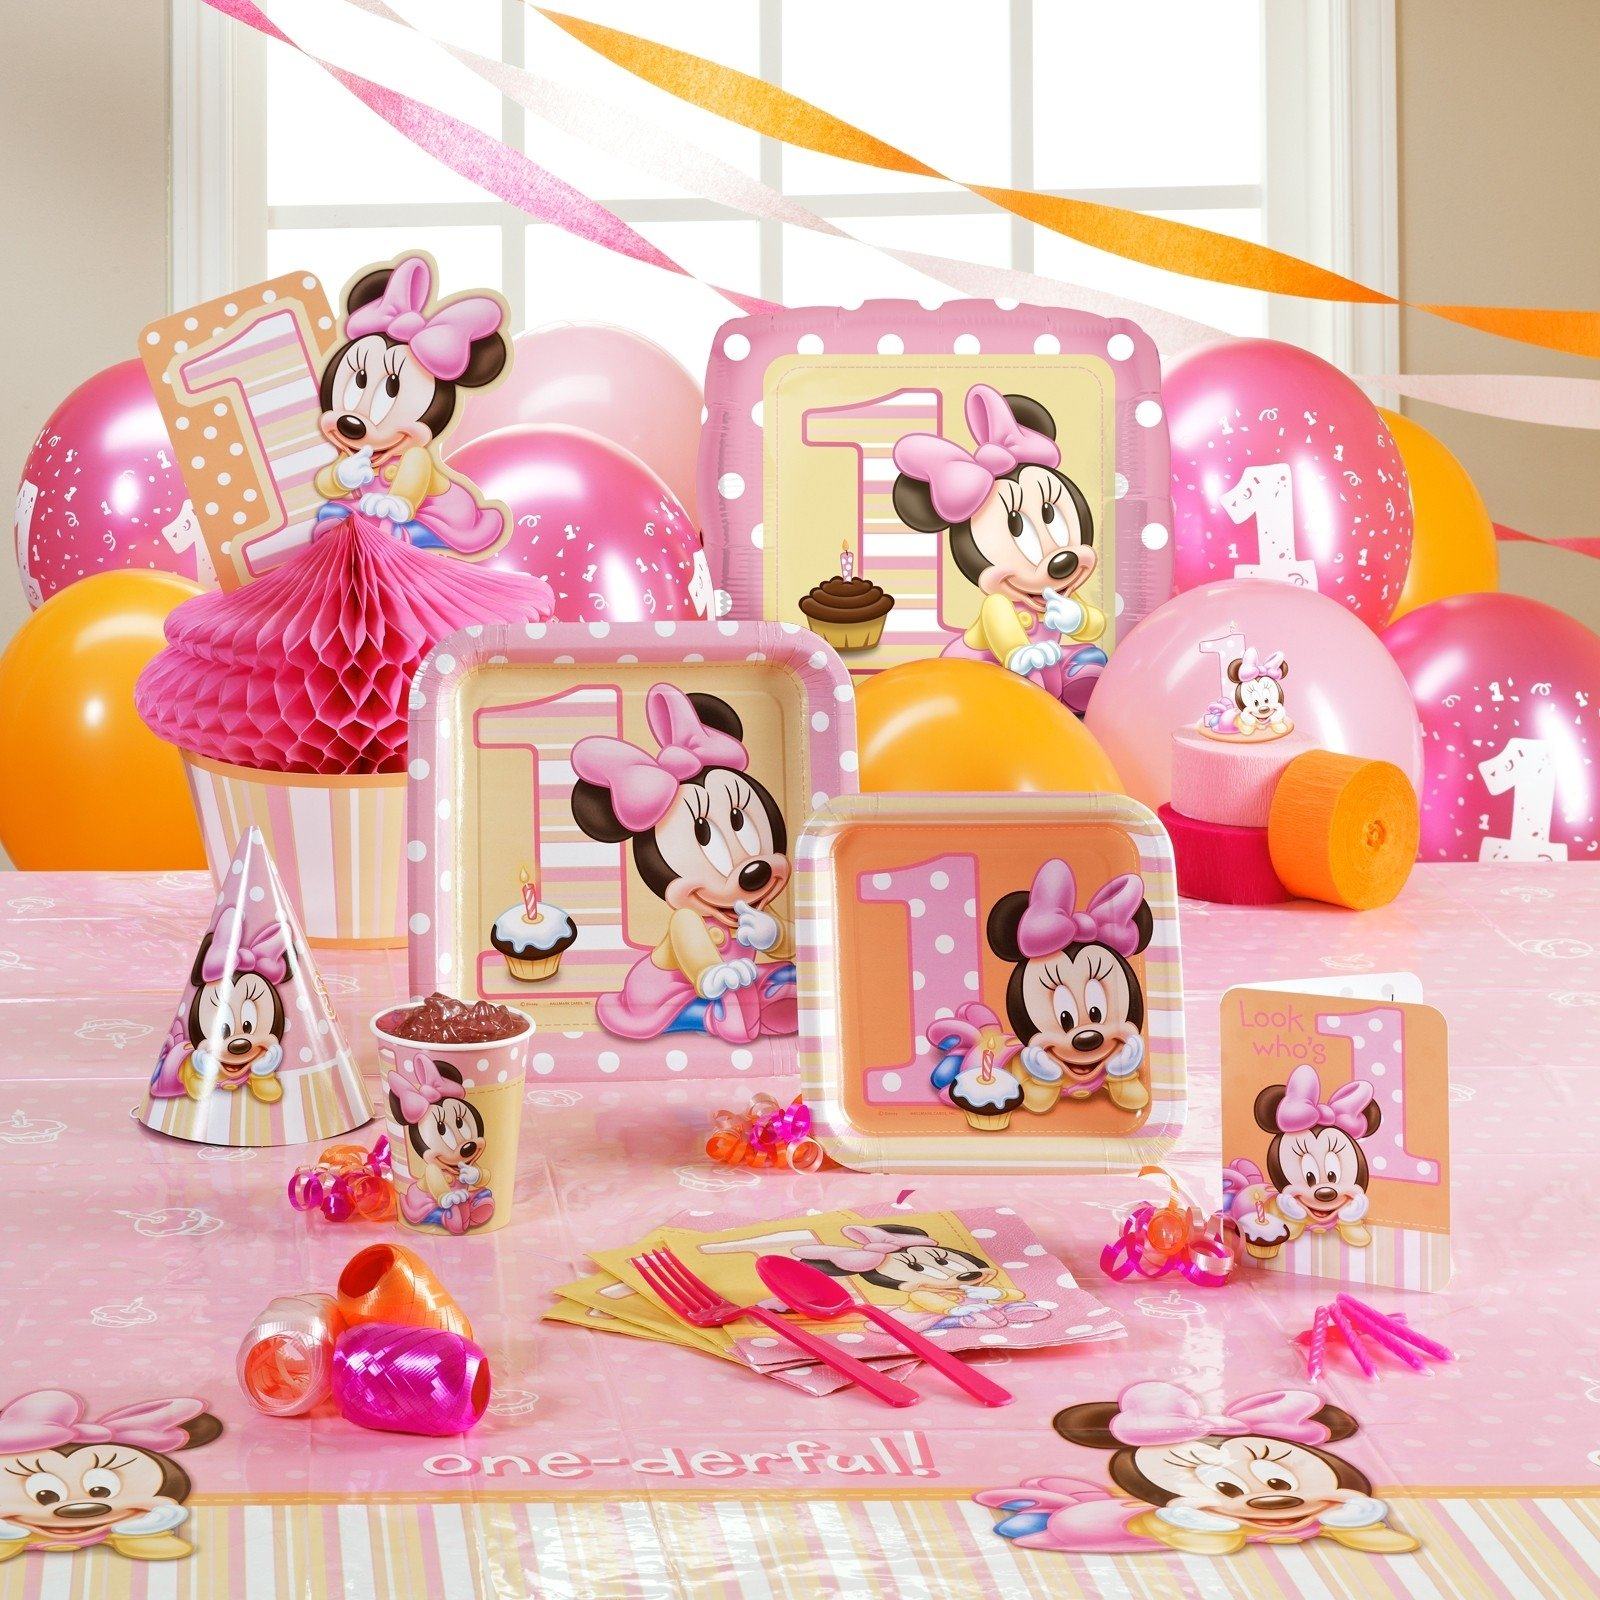 10 Fashionable Baby Minnie Mouse 1St Birthday Party Ideas minnie mouse 1st birthday party ph d serts cakes